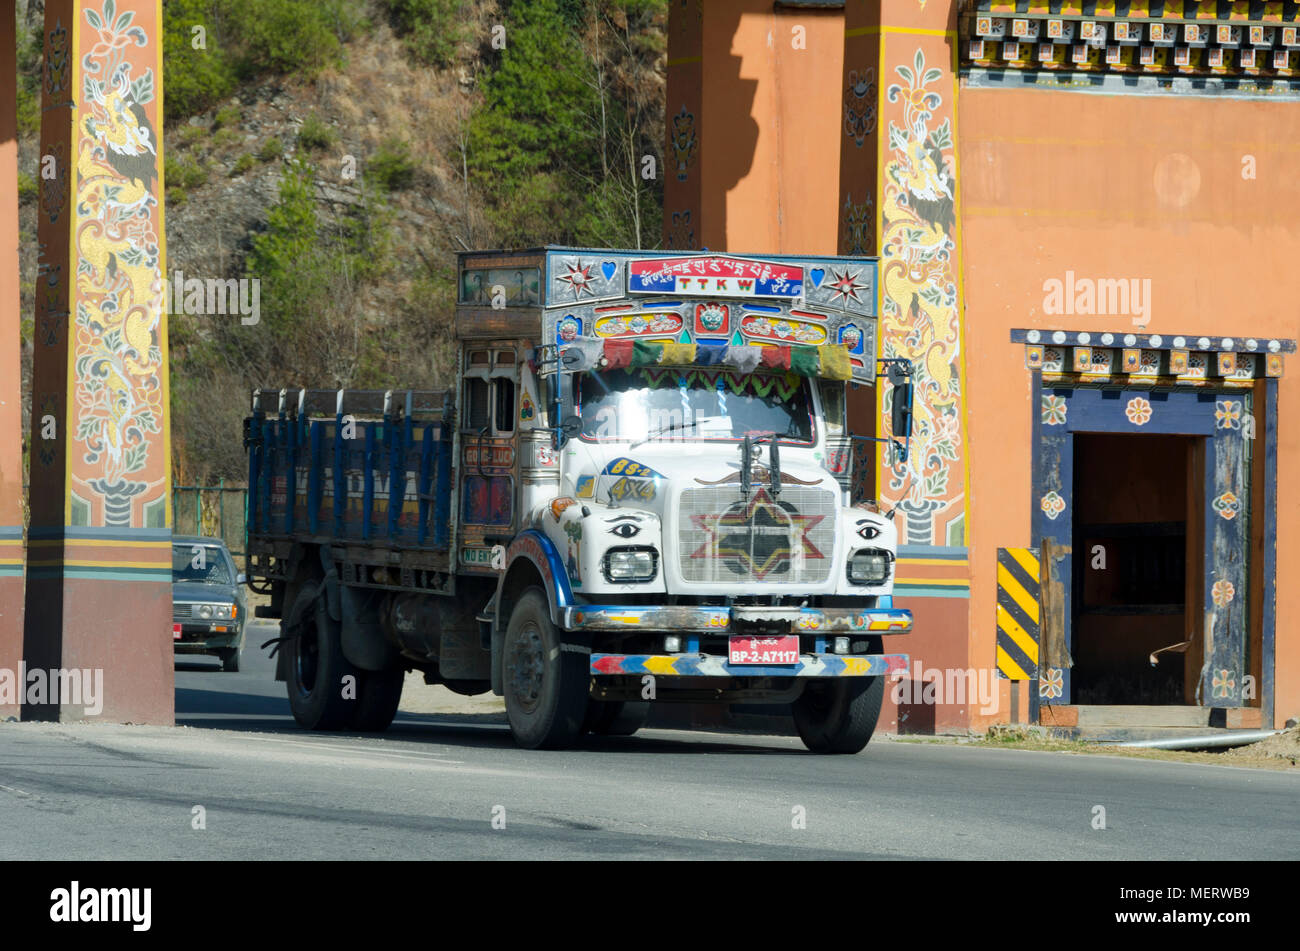 Decorate truck passing through gateway at entrance to city, Thimphu, Bhutan - Stock Image